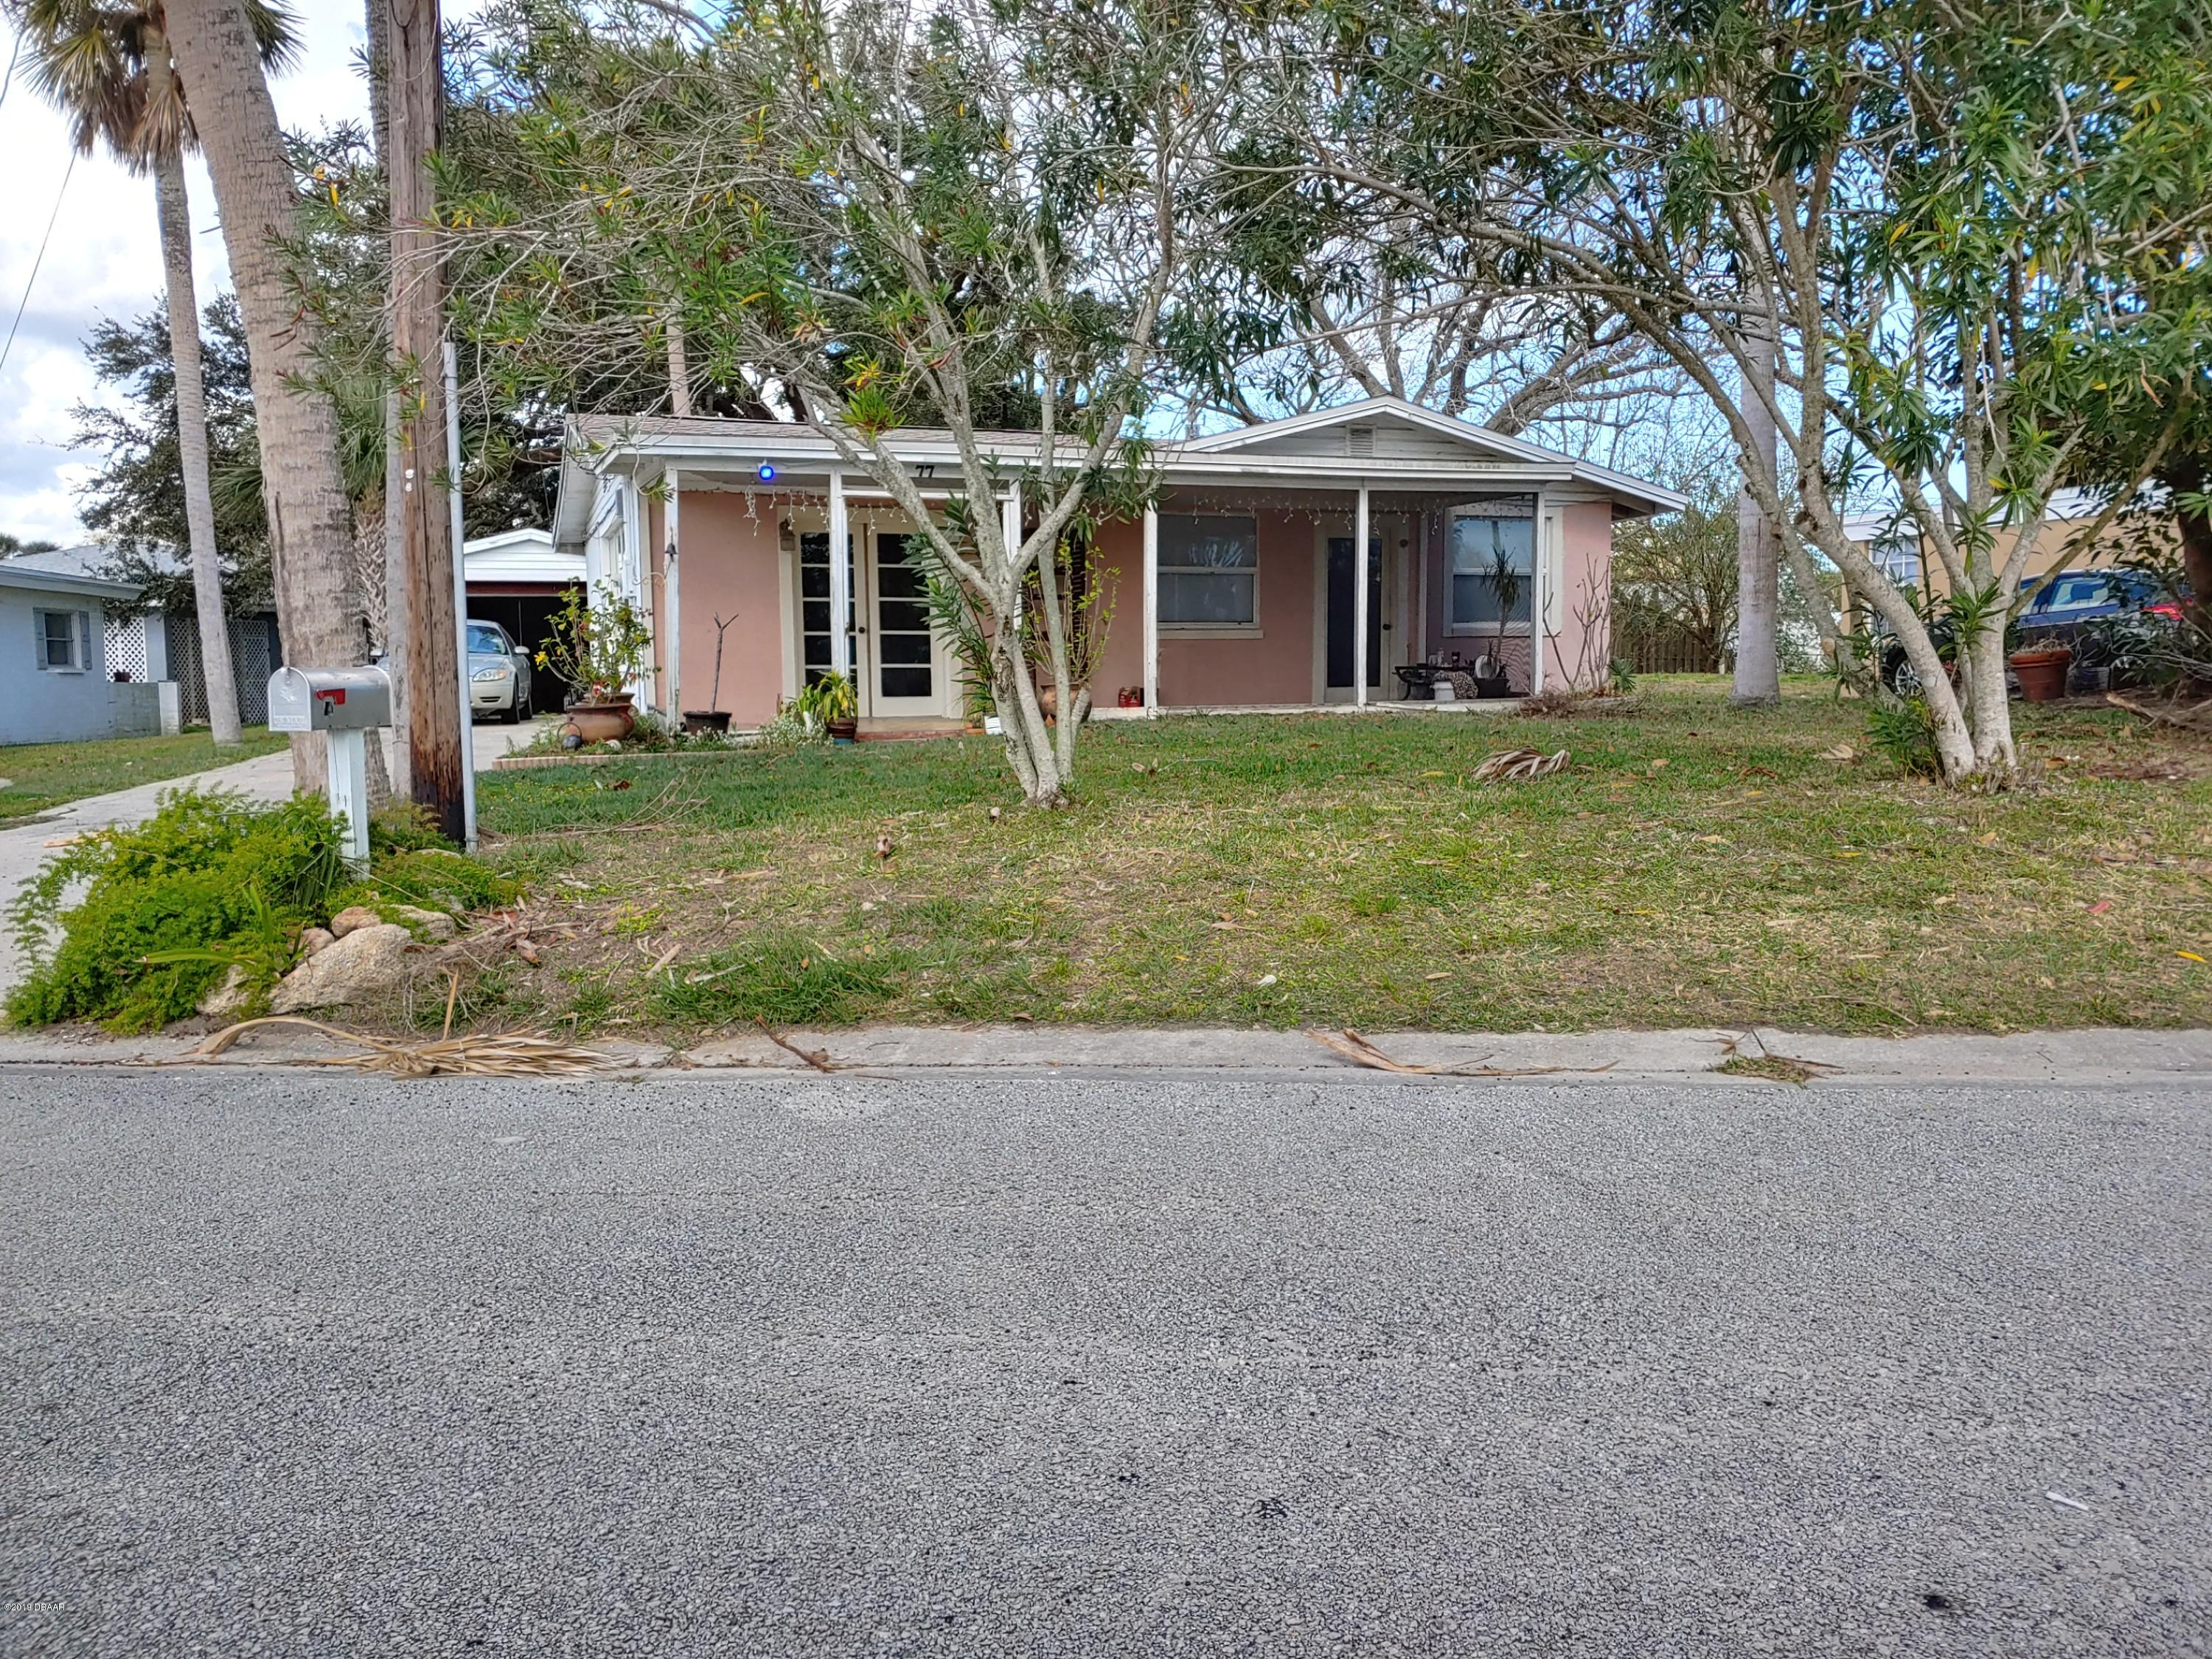 77 BROOKS Drive, Ormond-By-The-Sea in Volusia County, FL 32176 Home for Sale